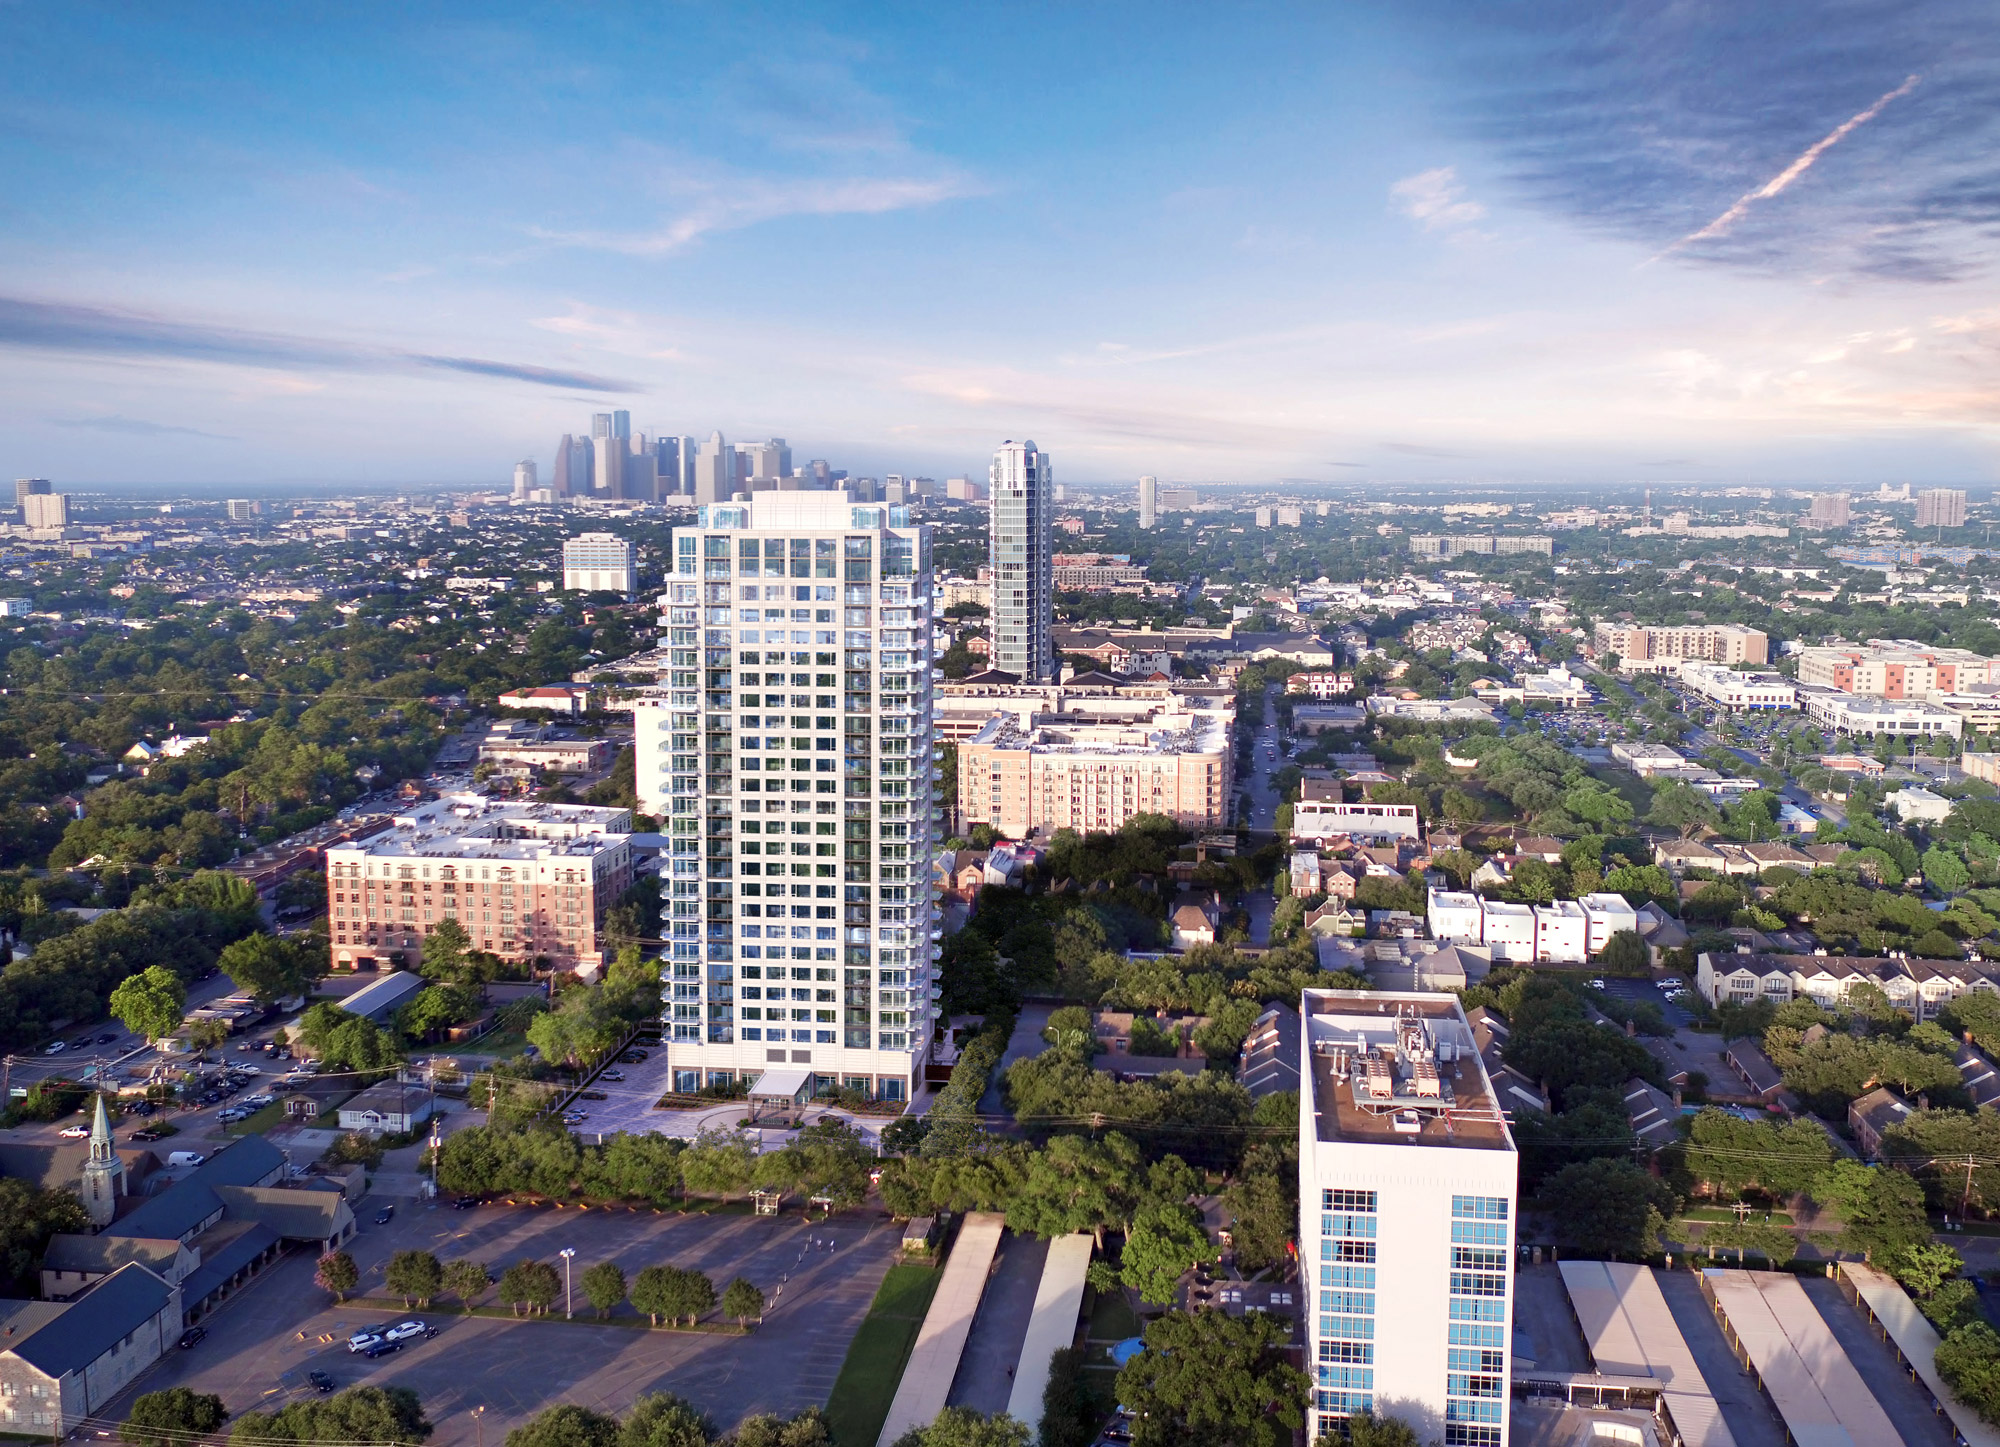 Villa Borghese River Oaks Houston | See Villa Borghese Condos For Sale